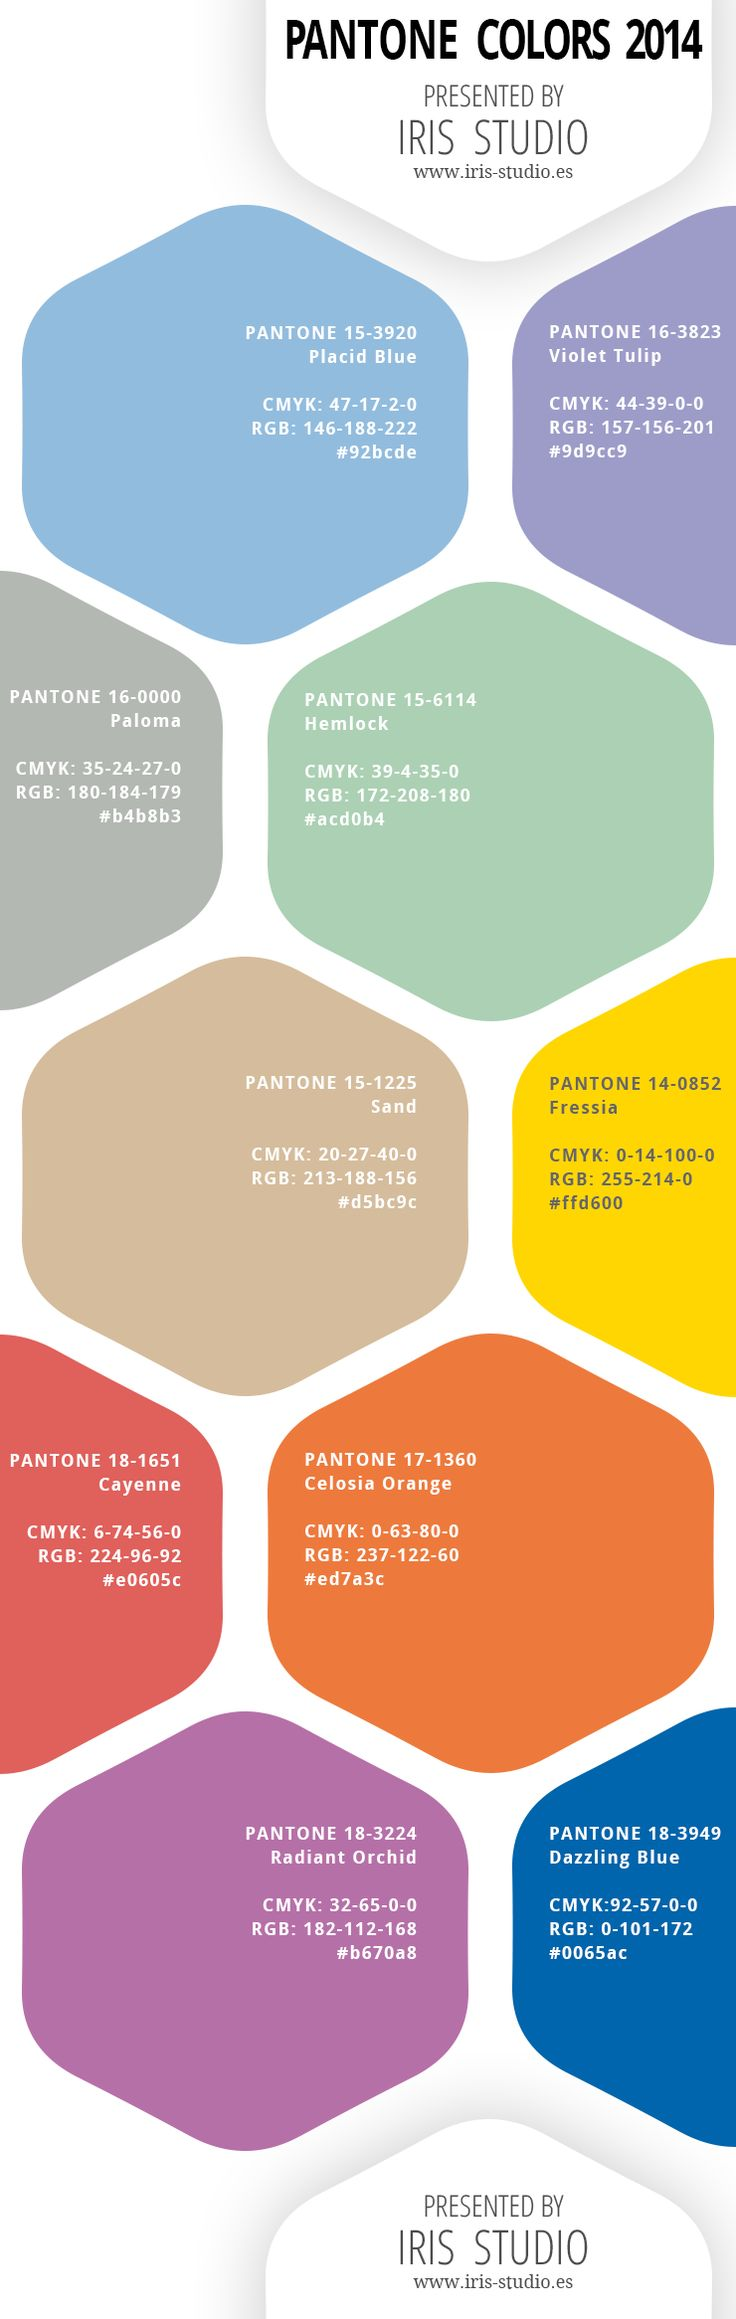 Online color viewer hex - Spring Colors Of 2014 By Pantone With Color Codes Cmyk Rgb And Hex Colores